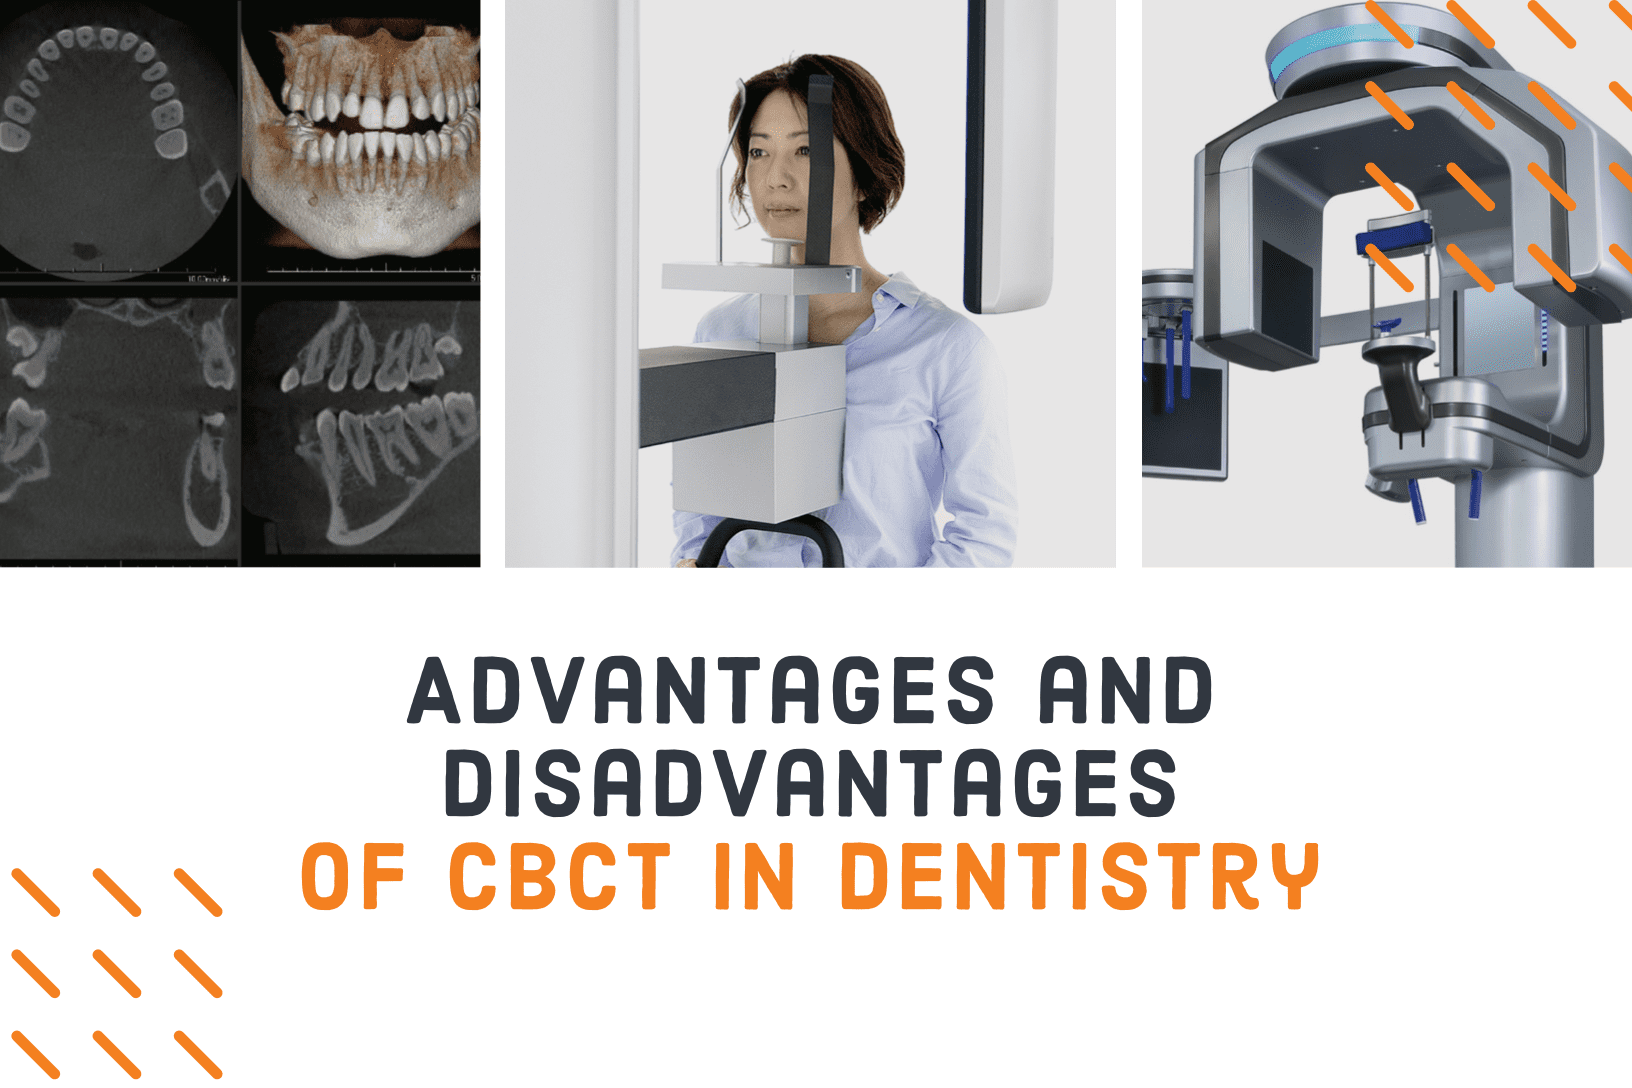 advantages and disadvantages of CBCT in dentistry